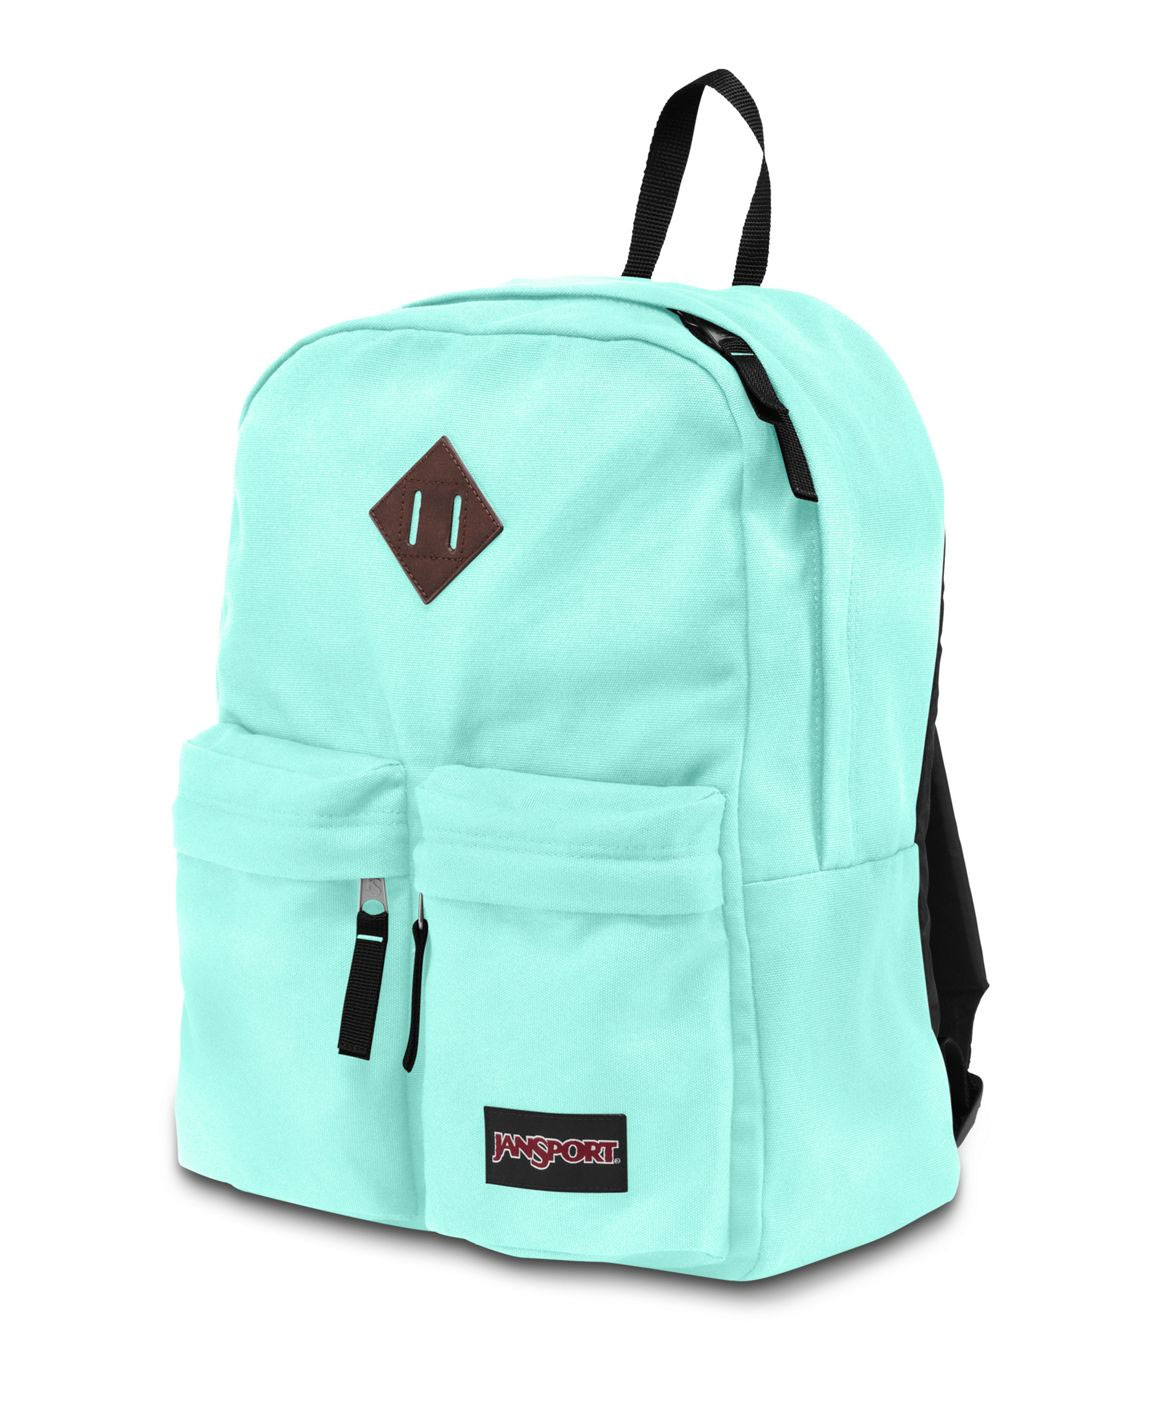 Where Can I Buy A Jansport Backpack DfcFNJef